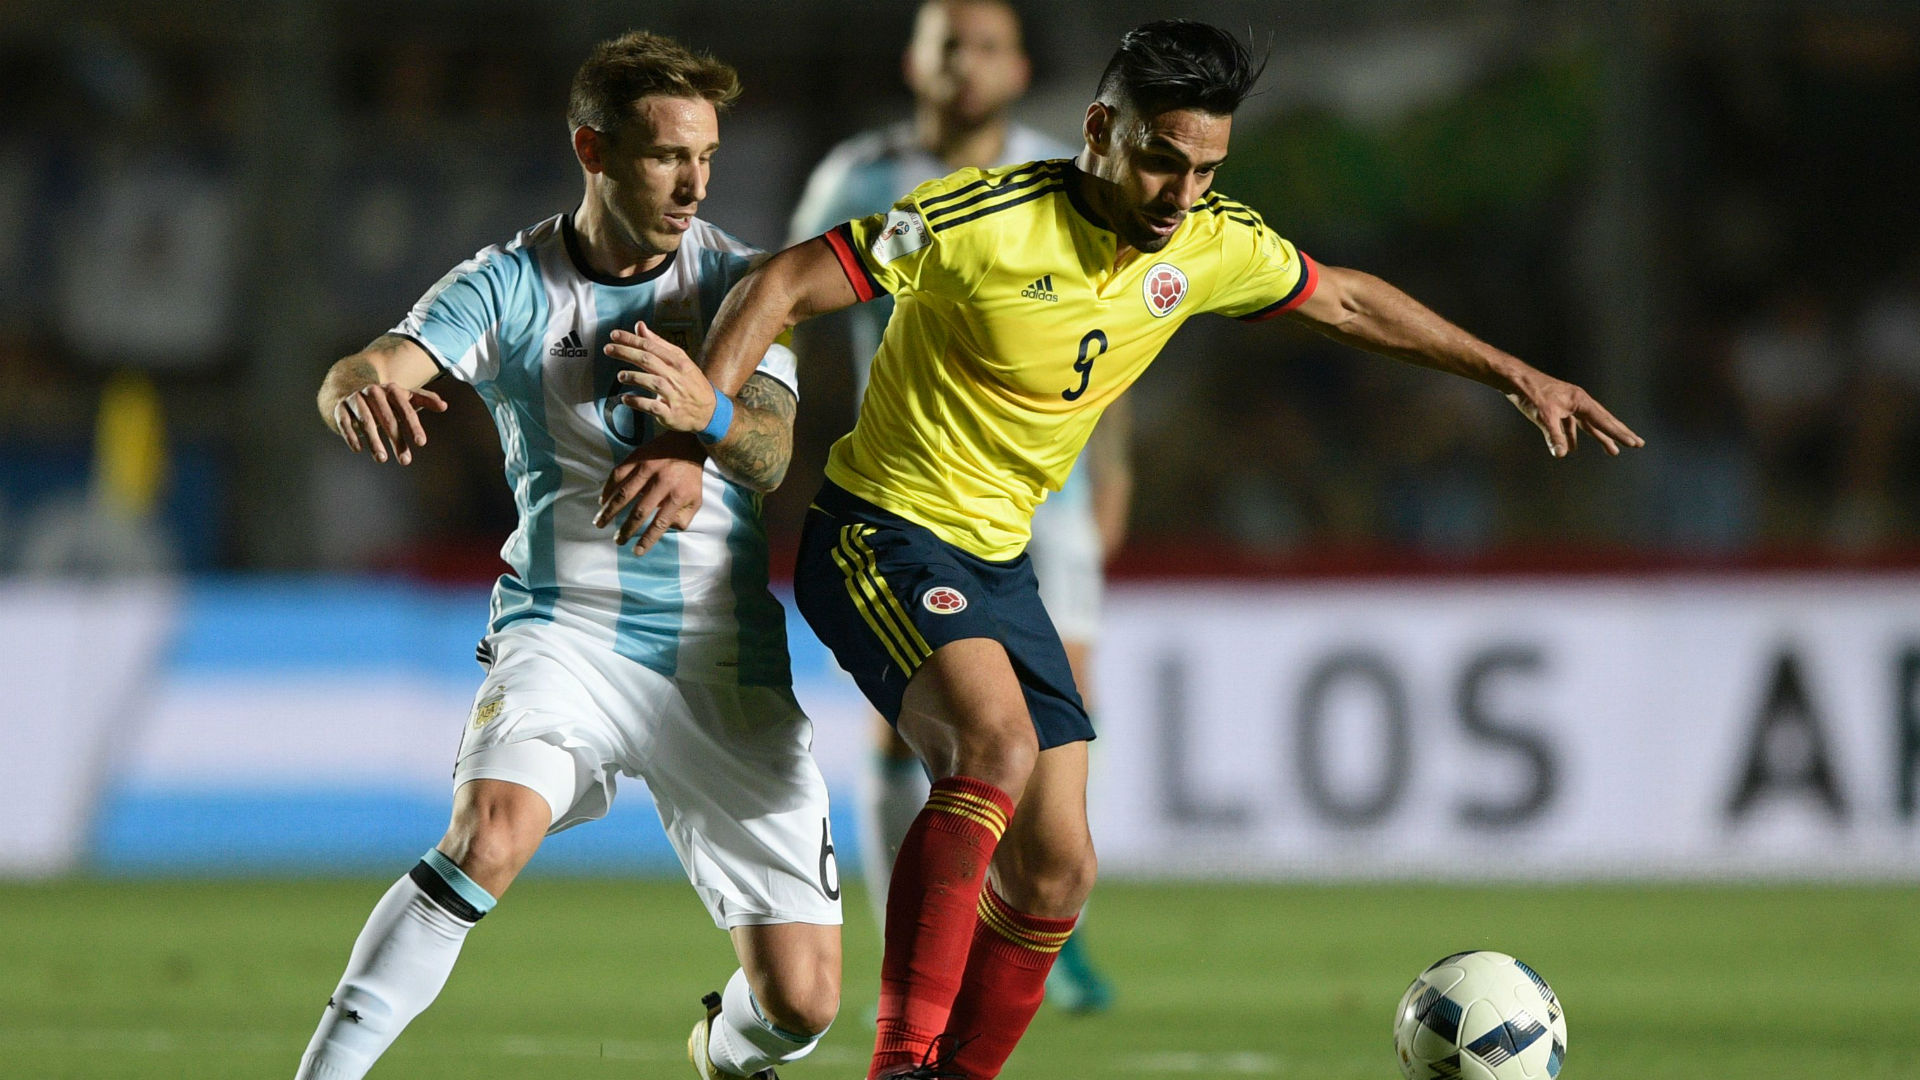 Colombia draws with Brazil in World Cup qualifier